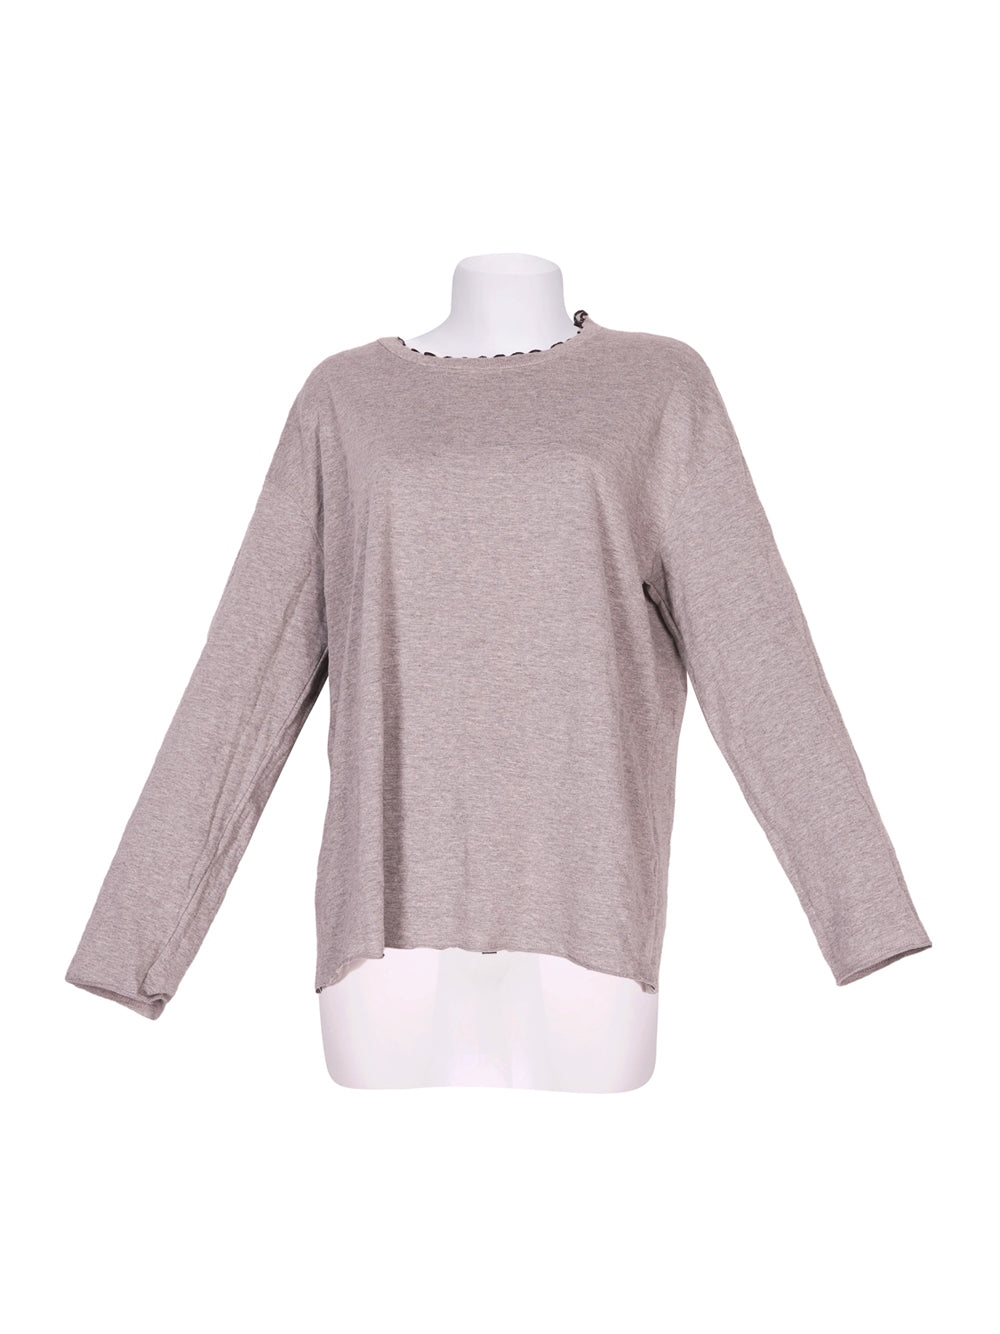 Front photo of Preloved Trf-Trafaluc (Zara) Grey Woman's long sleeved shirt - size 12/L